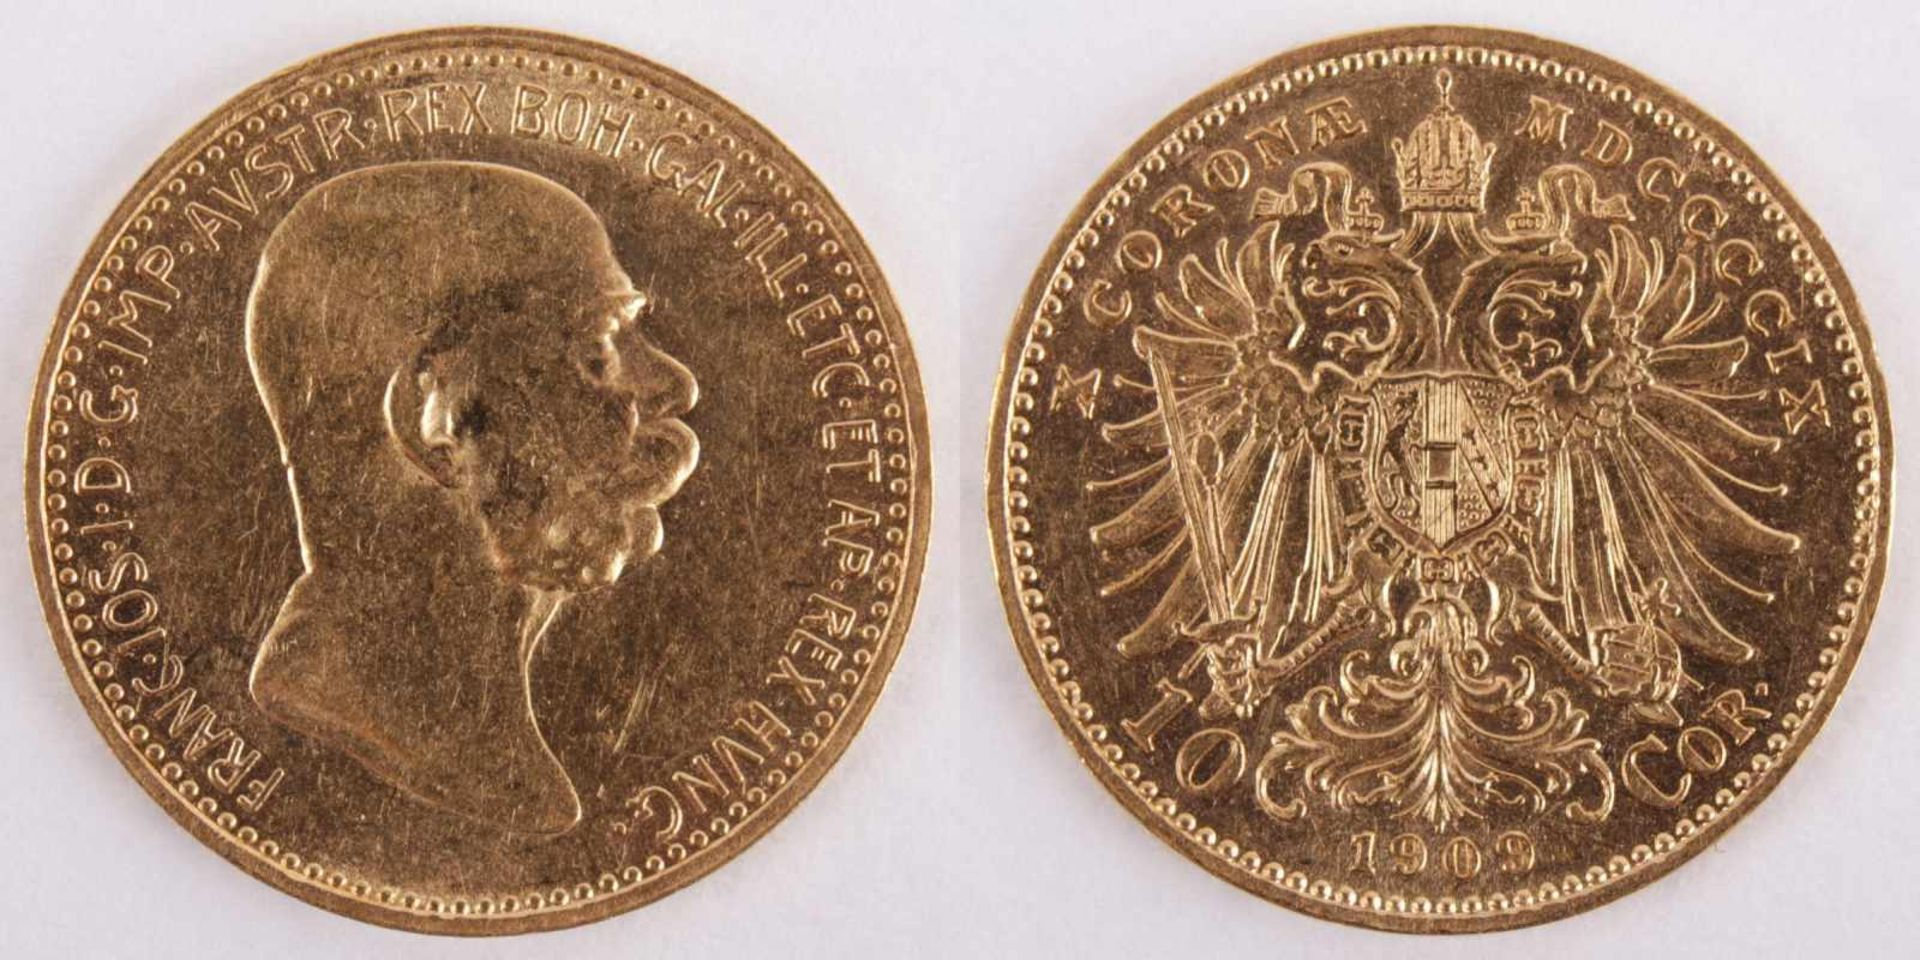 Los 6 - Gold coin: 10 Crown FJI 1909 Austria-Hungary, 10 Crown Franz Joseph I., Marshall type, year 1909,